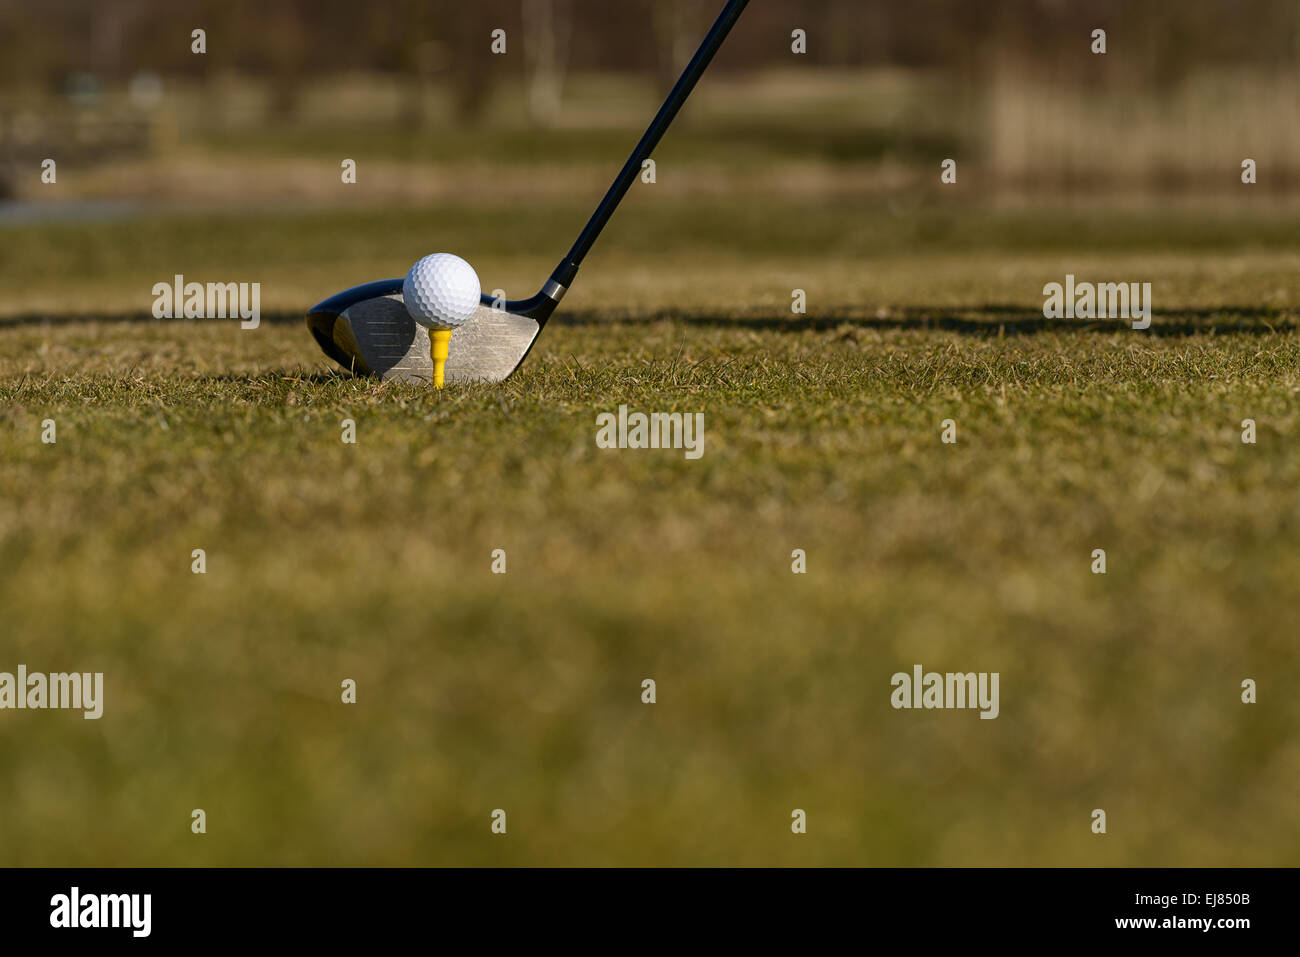 Conceptual image of a golfer teeing-off on the fairway with a low angle view of the ball on a tee and head of the - Stock Image